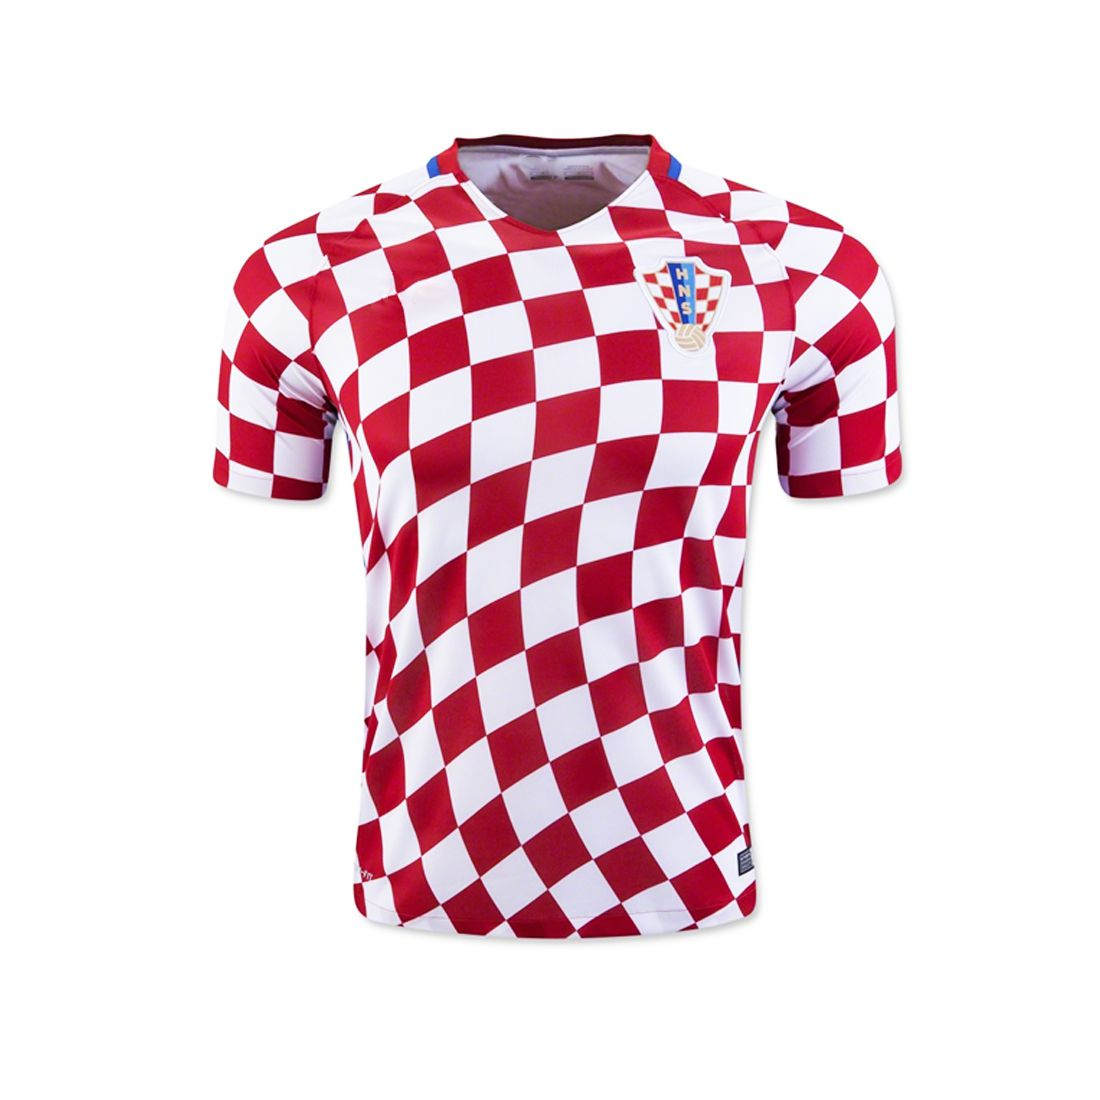 152421ea317 Fifa World Cup Croatia National Team Red Colour Jersey  Buy Online at Best  Price on Snapdeal